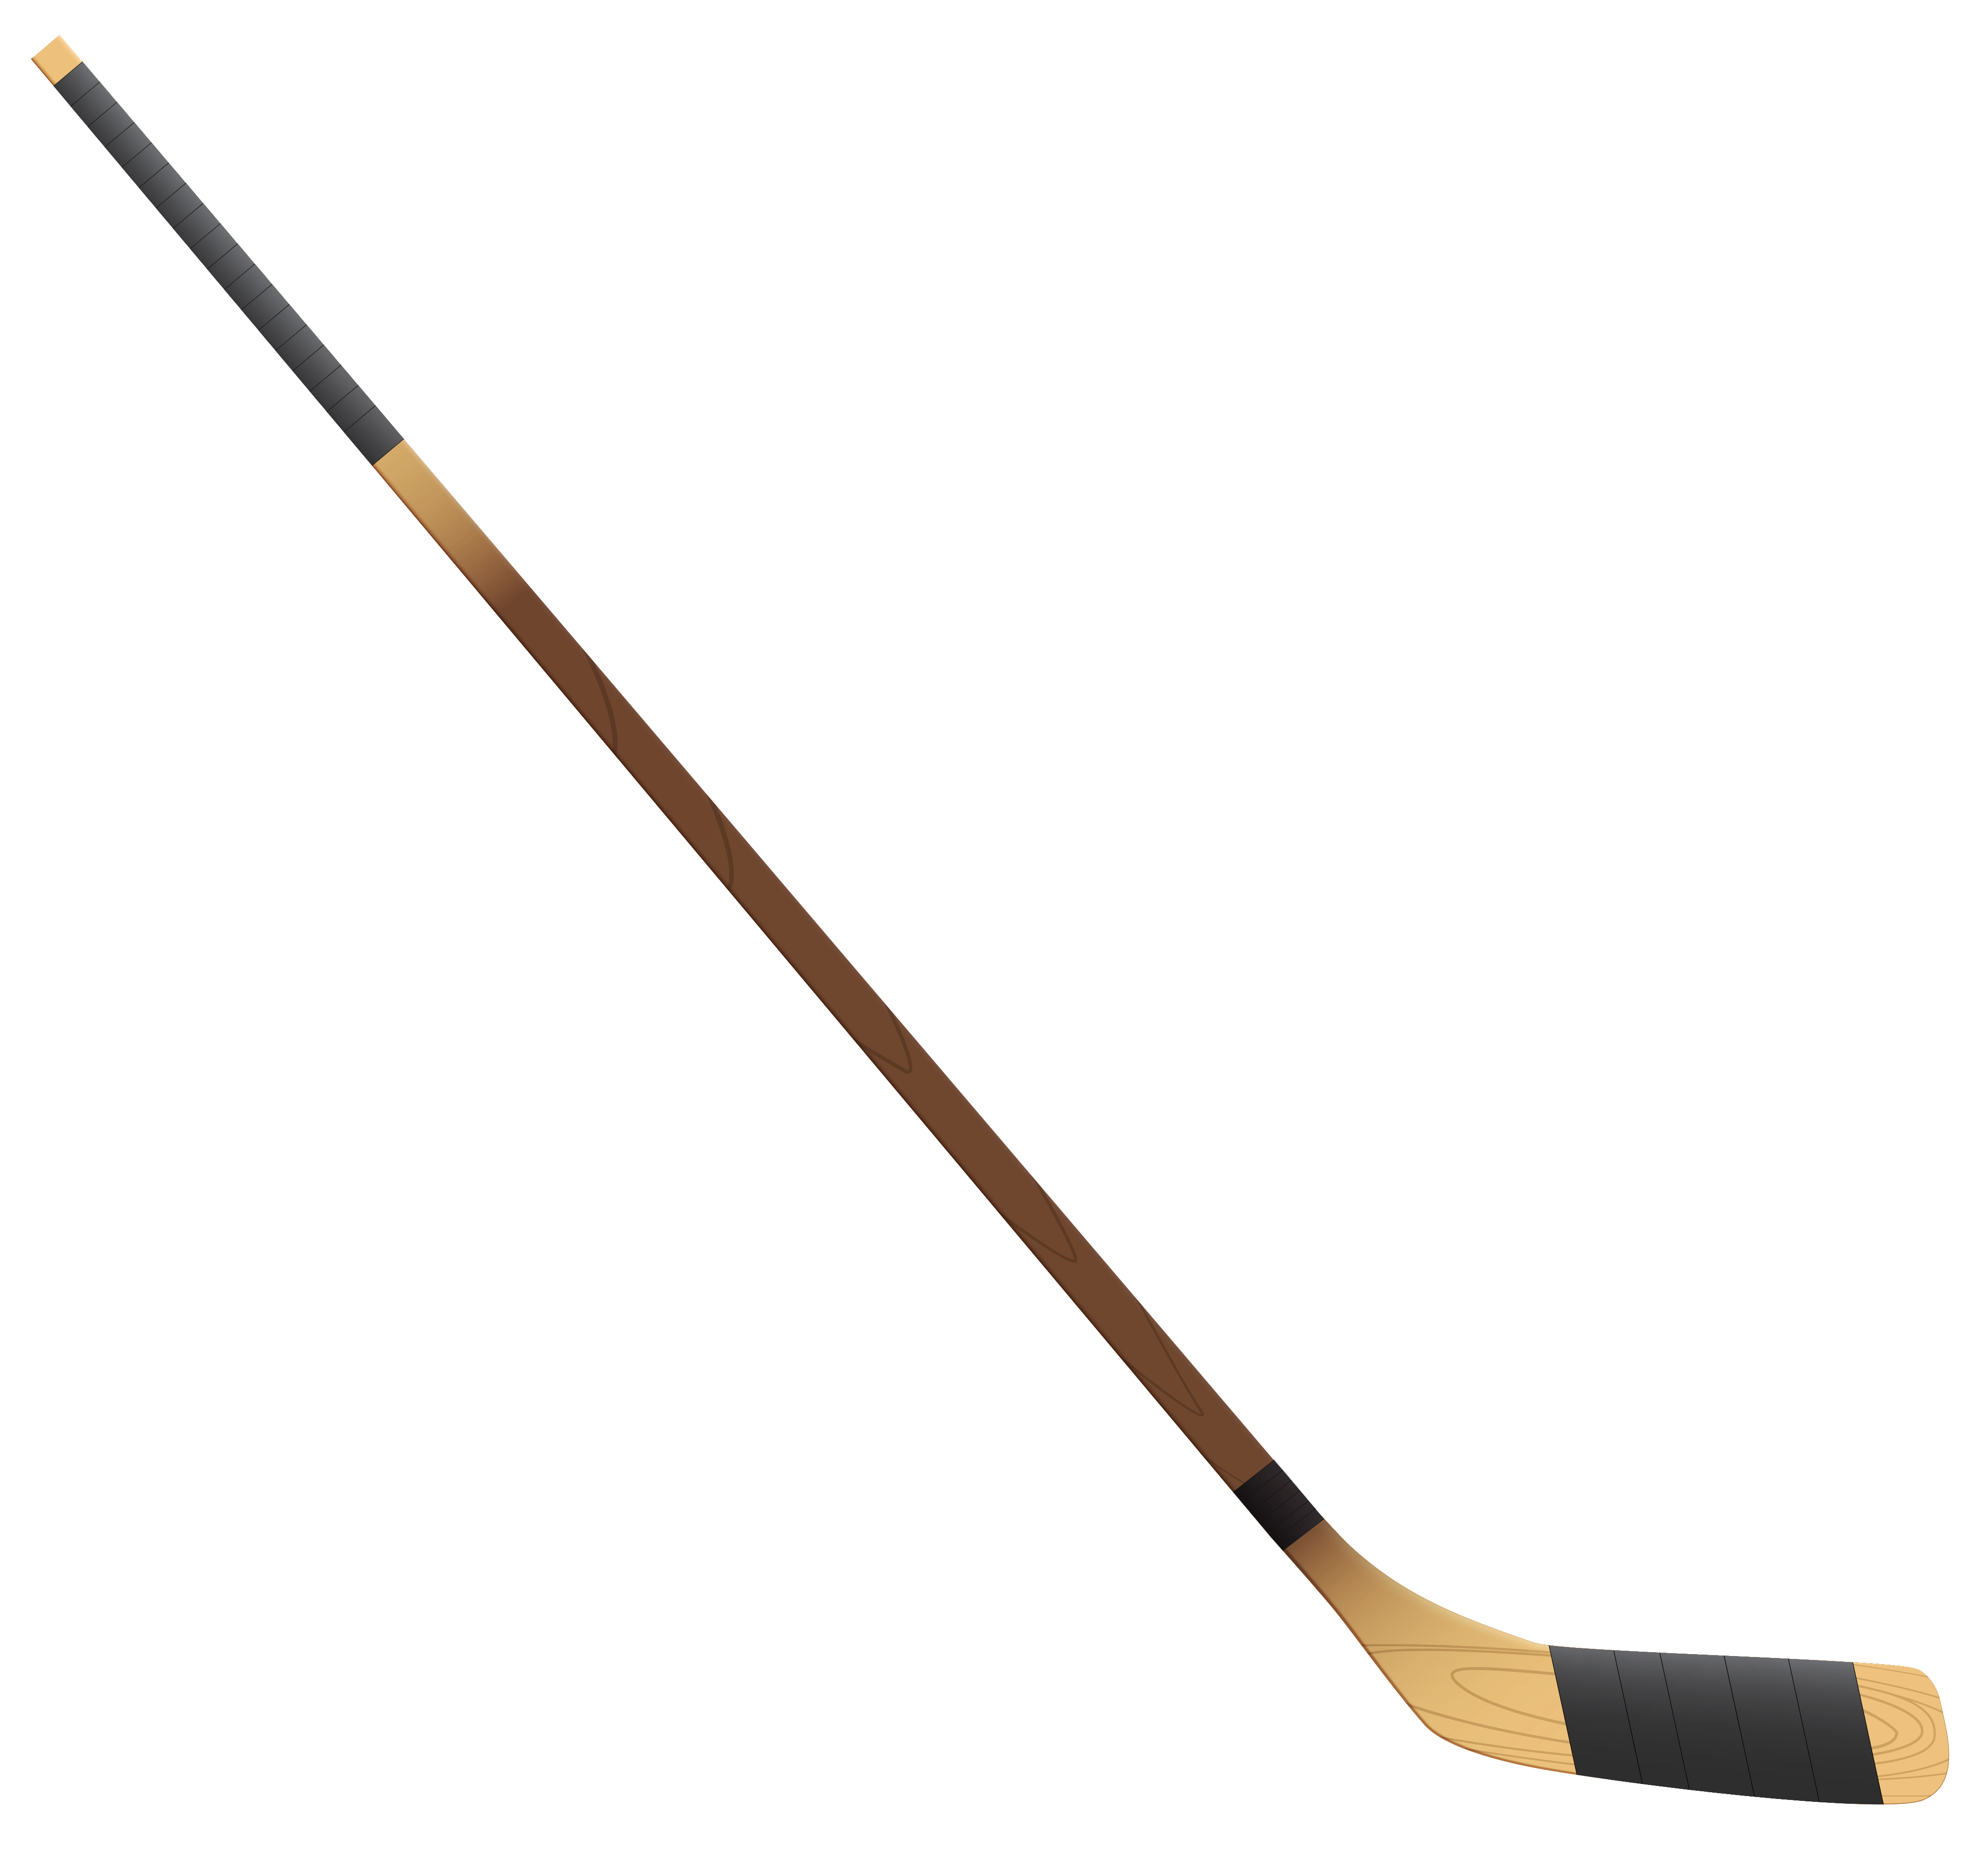 Hockey Stick Png Clipart Picture Hockey Stick Clipart Png Hockey Stick Clip Art Hockey